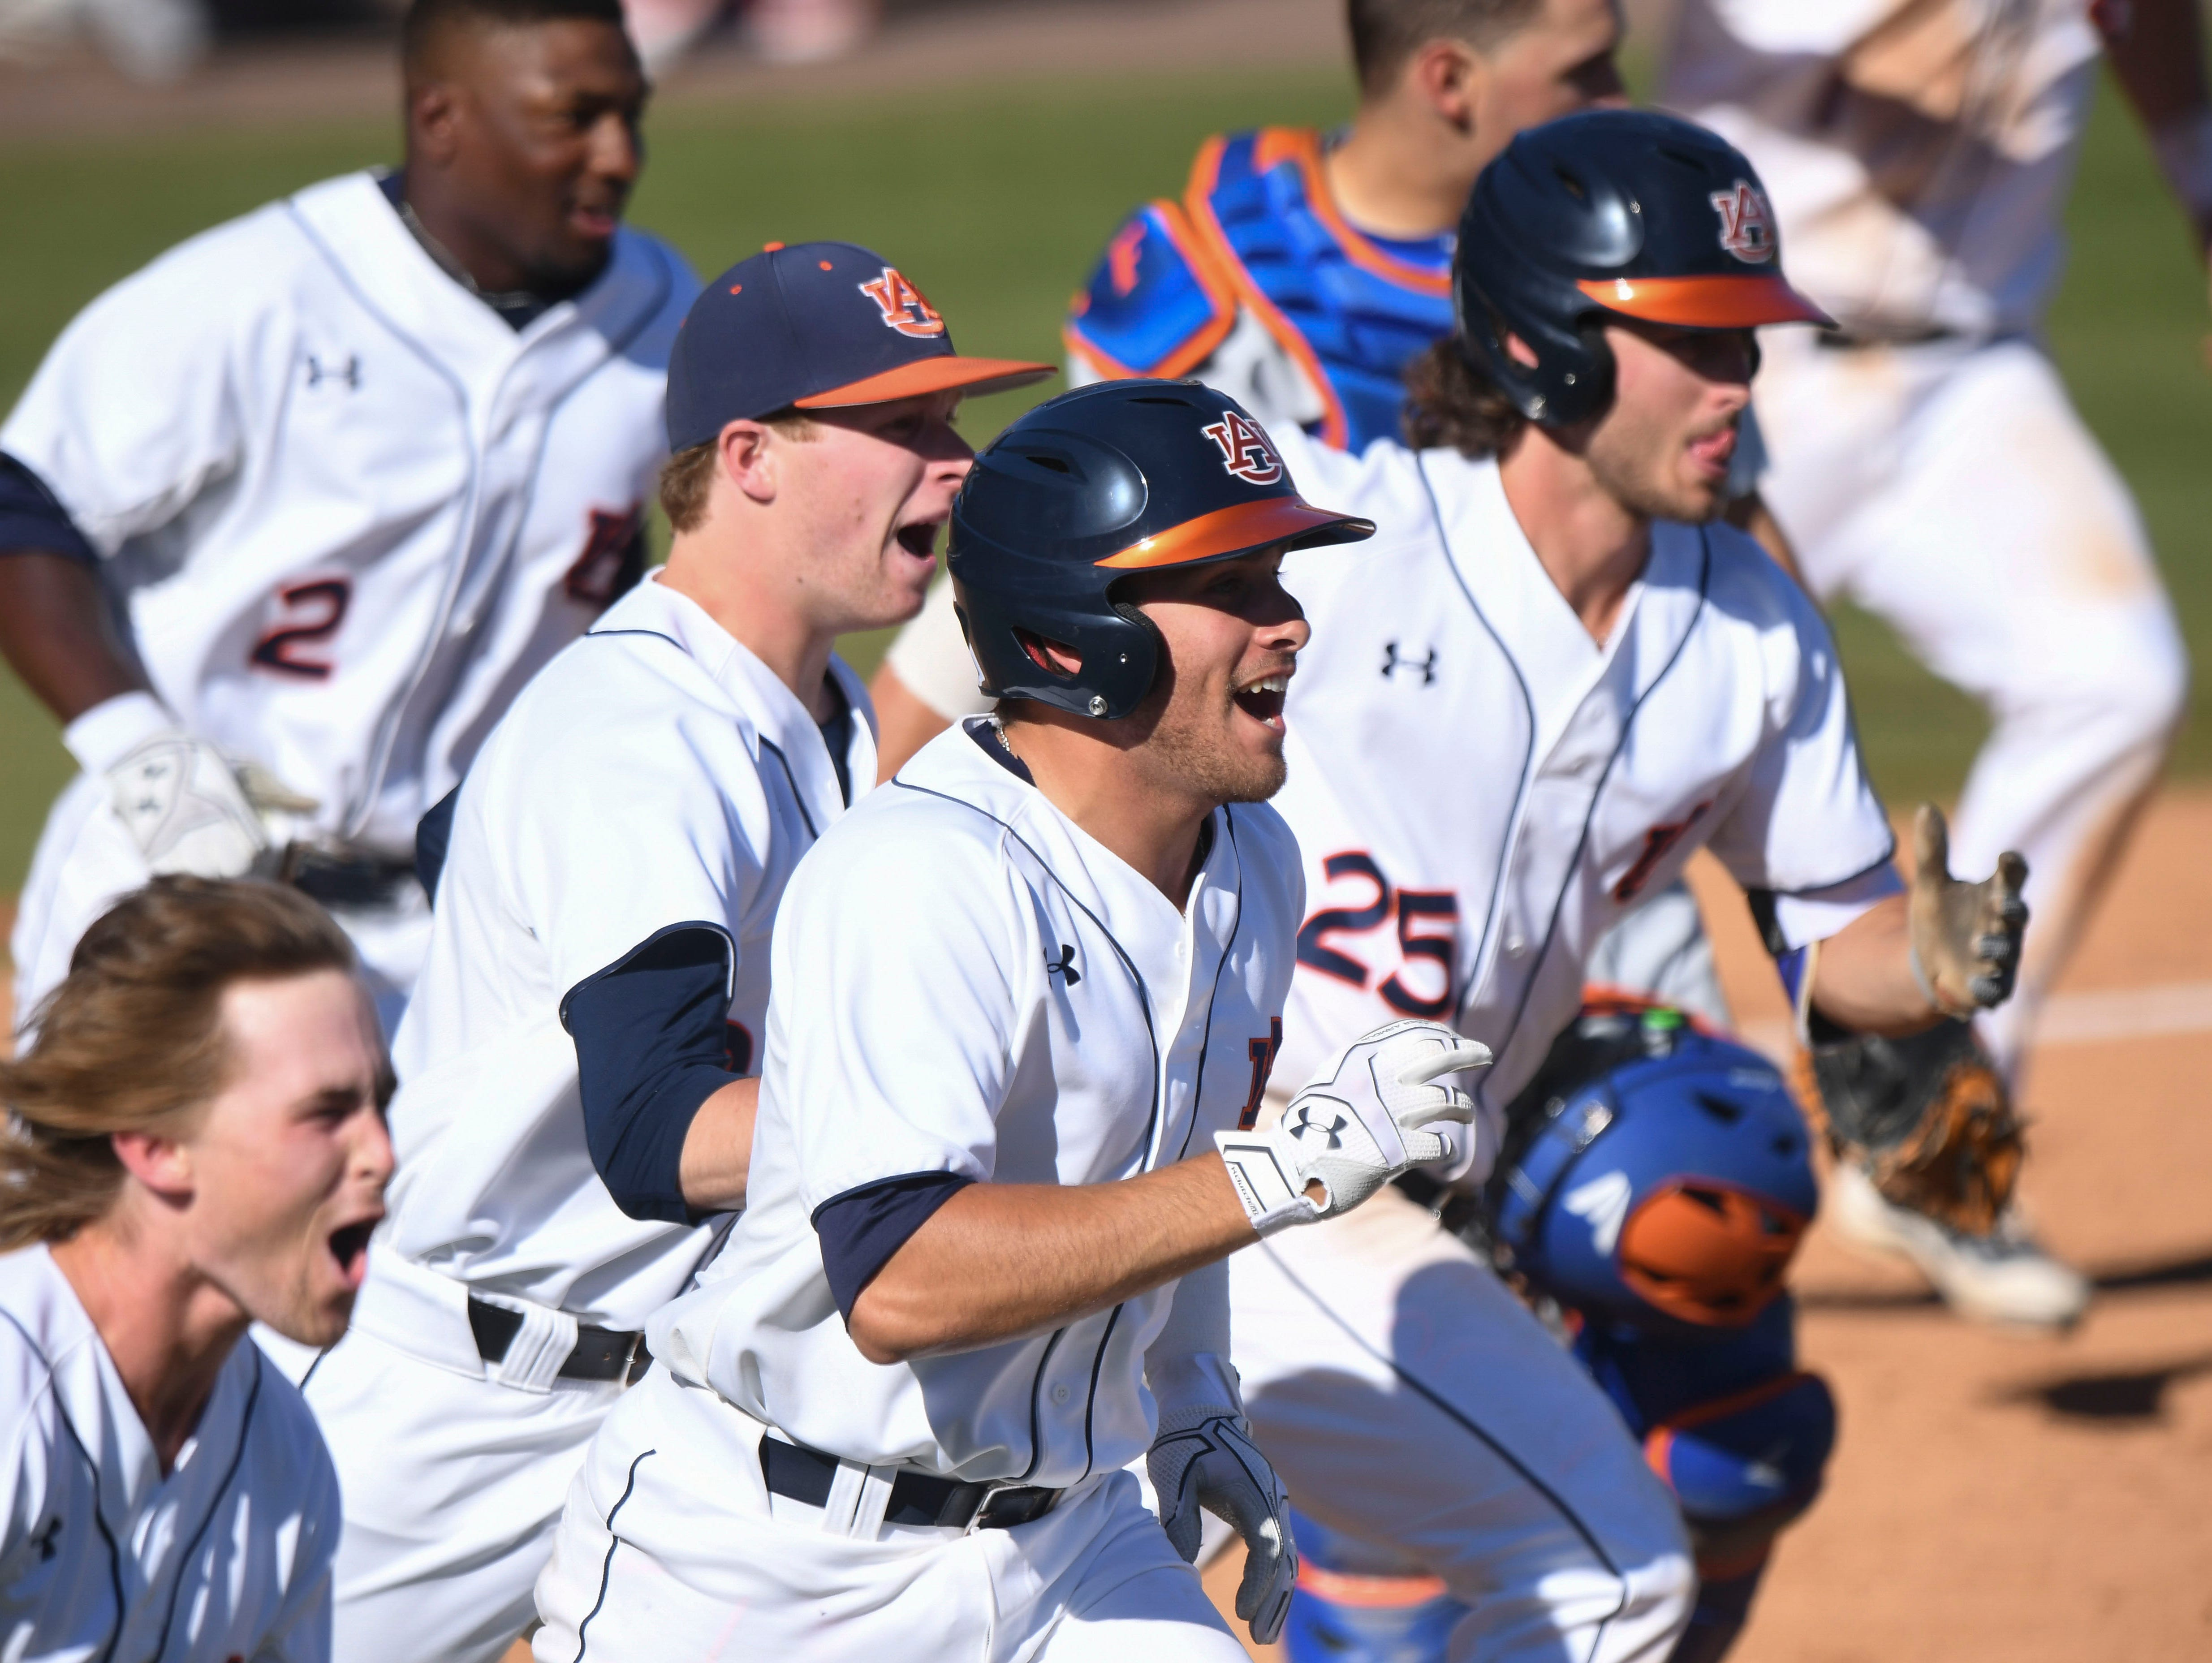 Auburn baseball players celebrate the walk-off win vs Florida to complete the three-game sweep on Sunday, March 19, 2017 in Auburn, Ala.